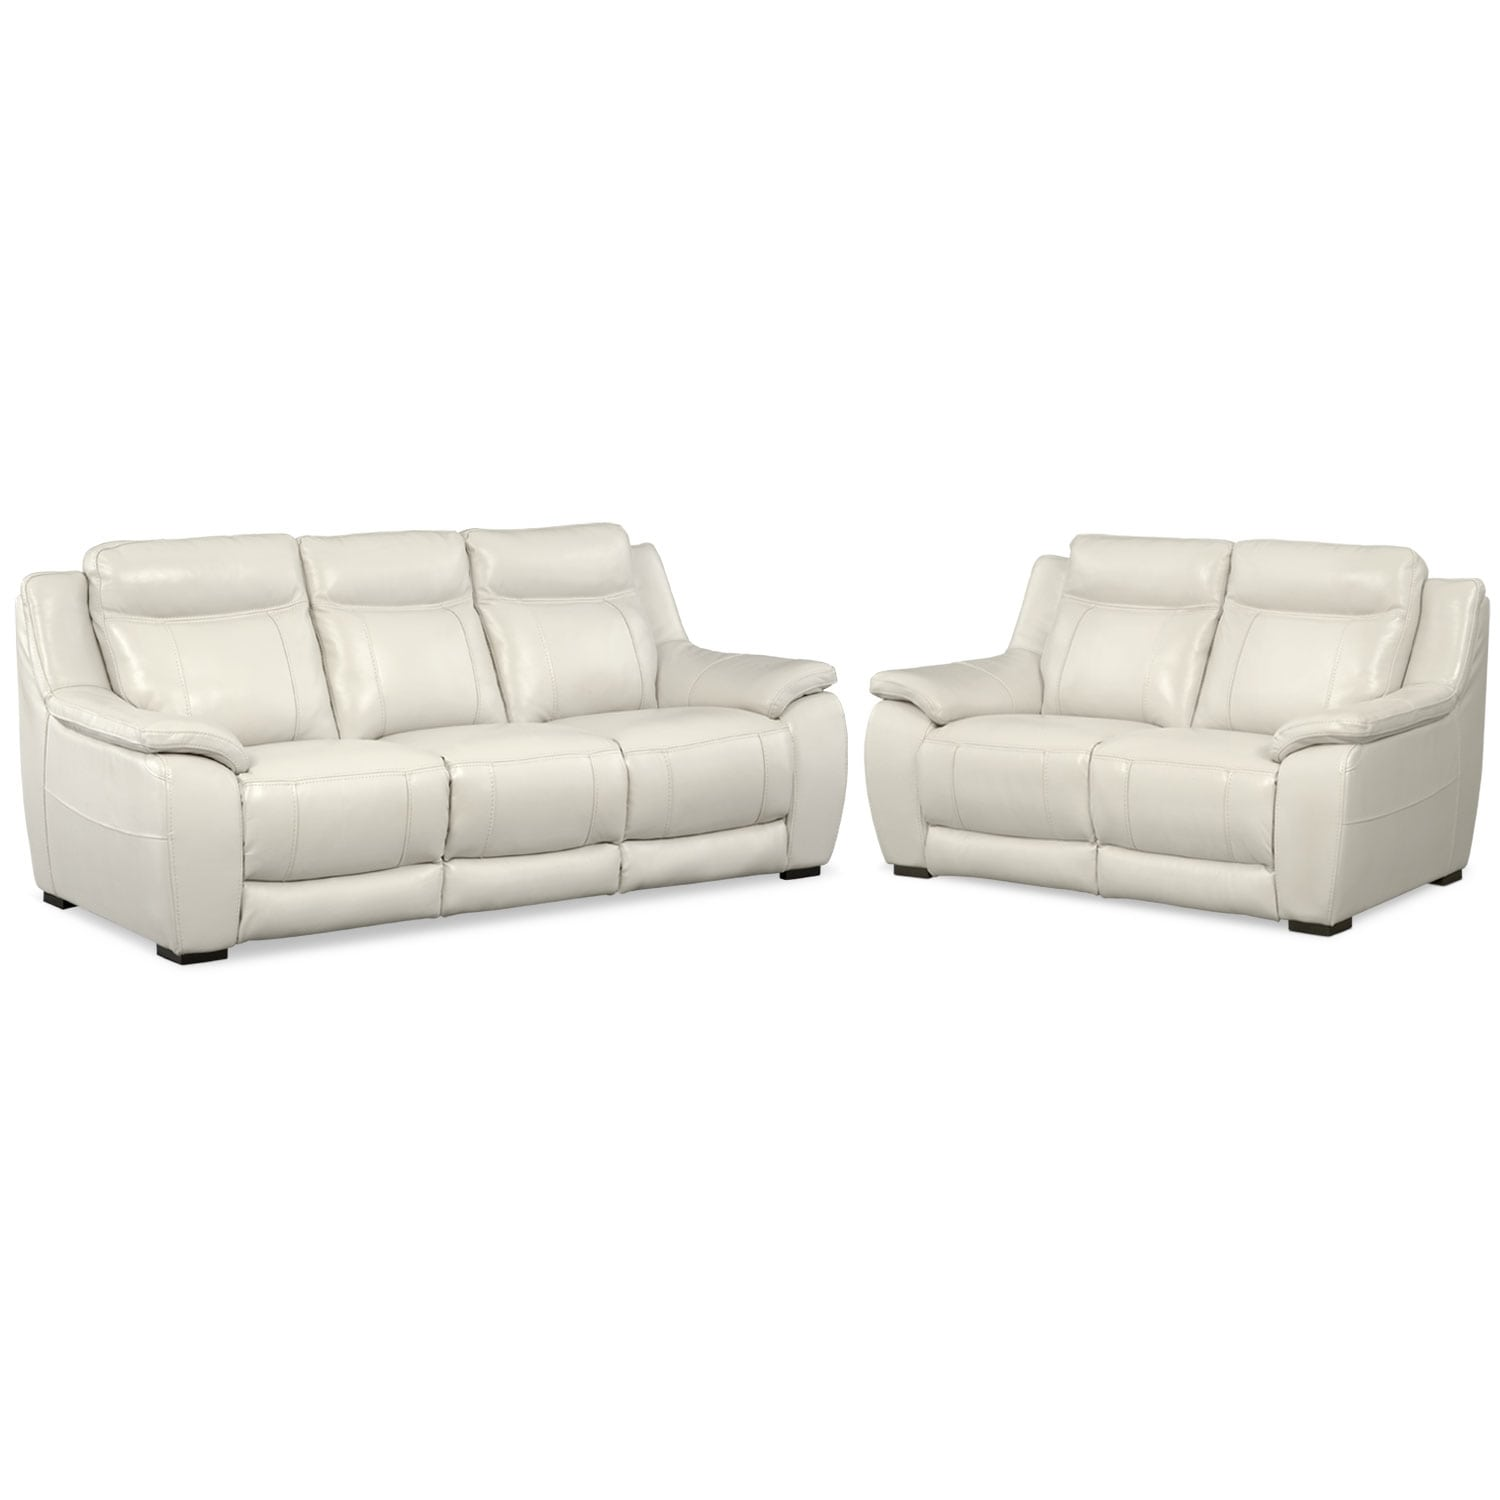 Lido Sofa And Loveseat Set Ivory American Signature Furniture